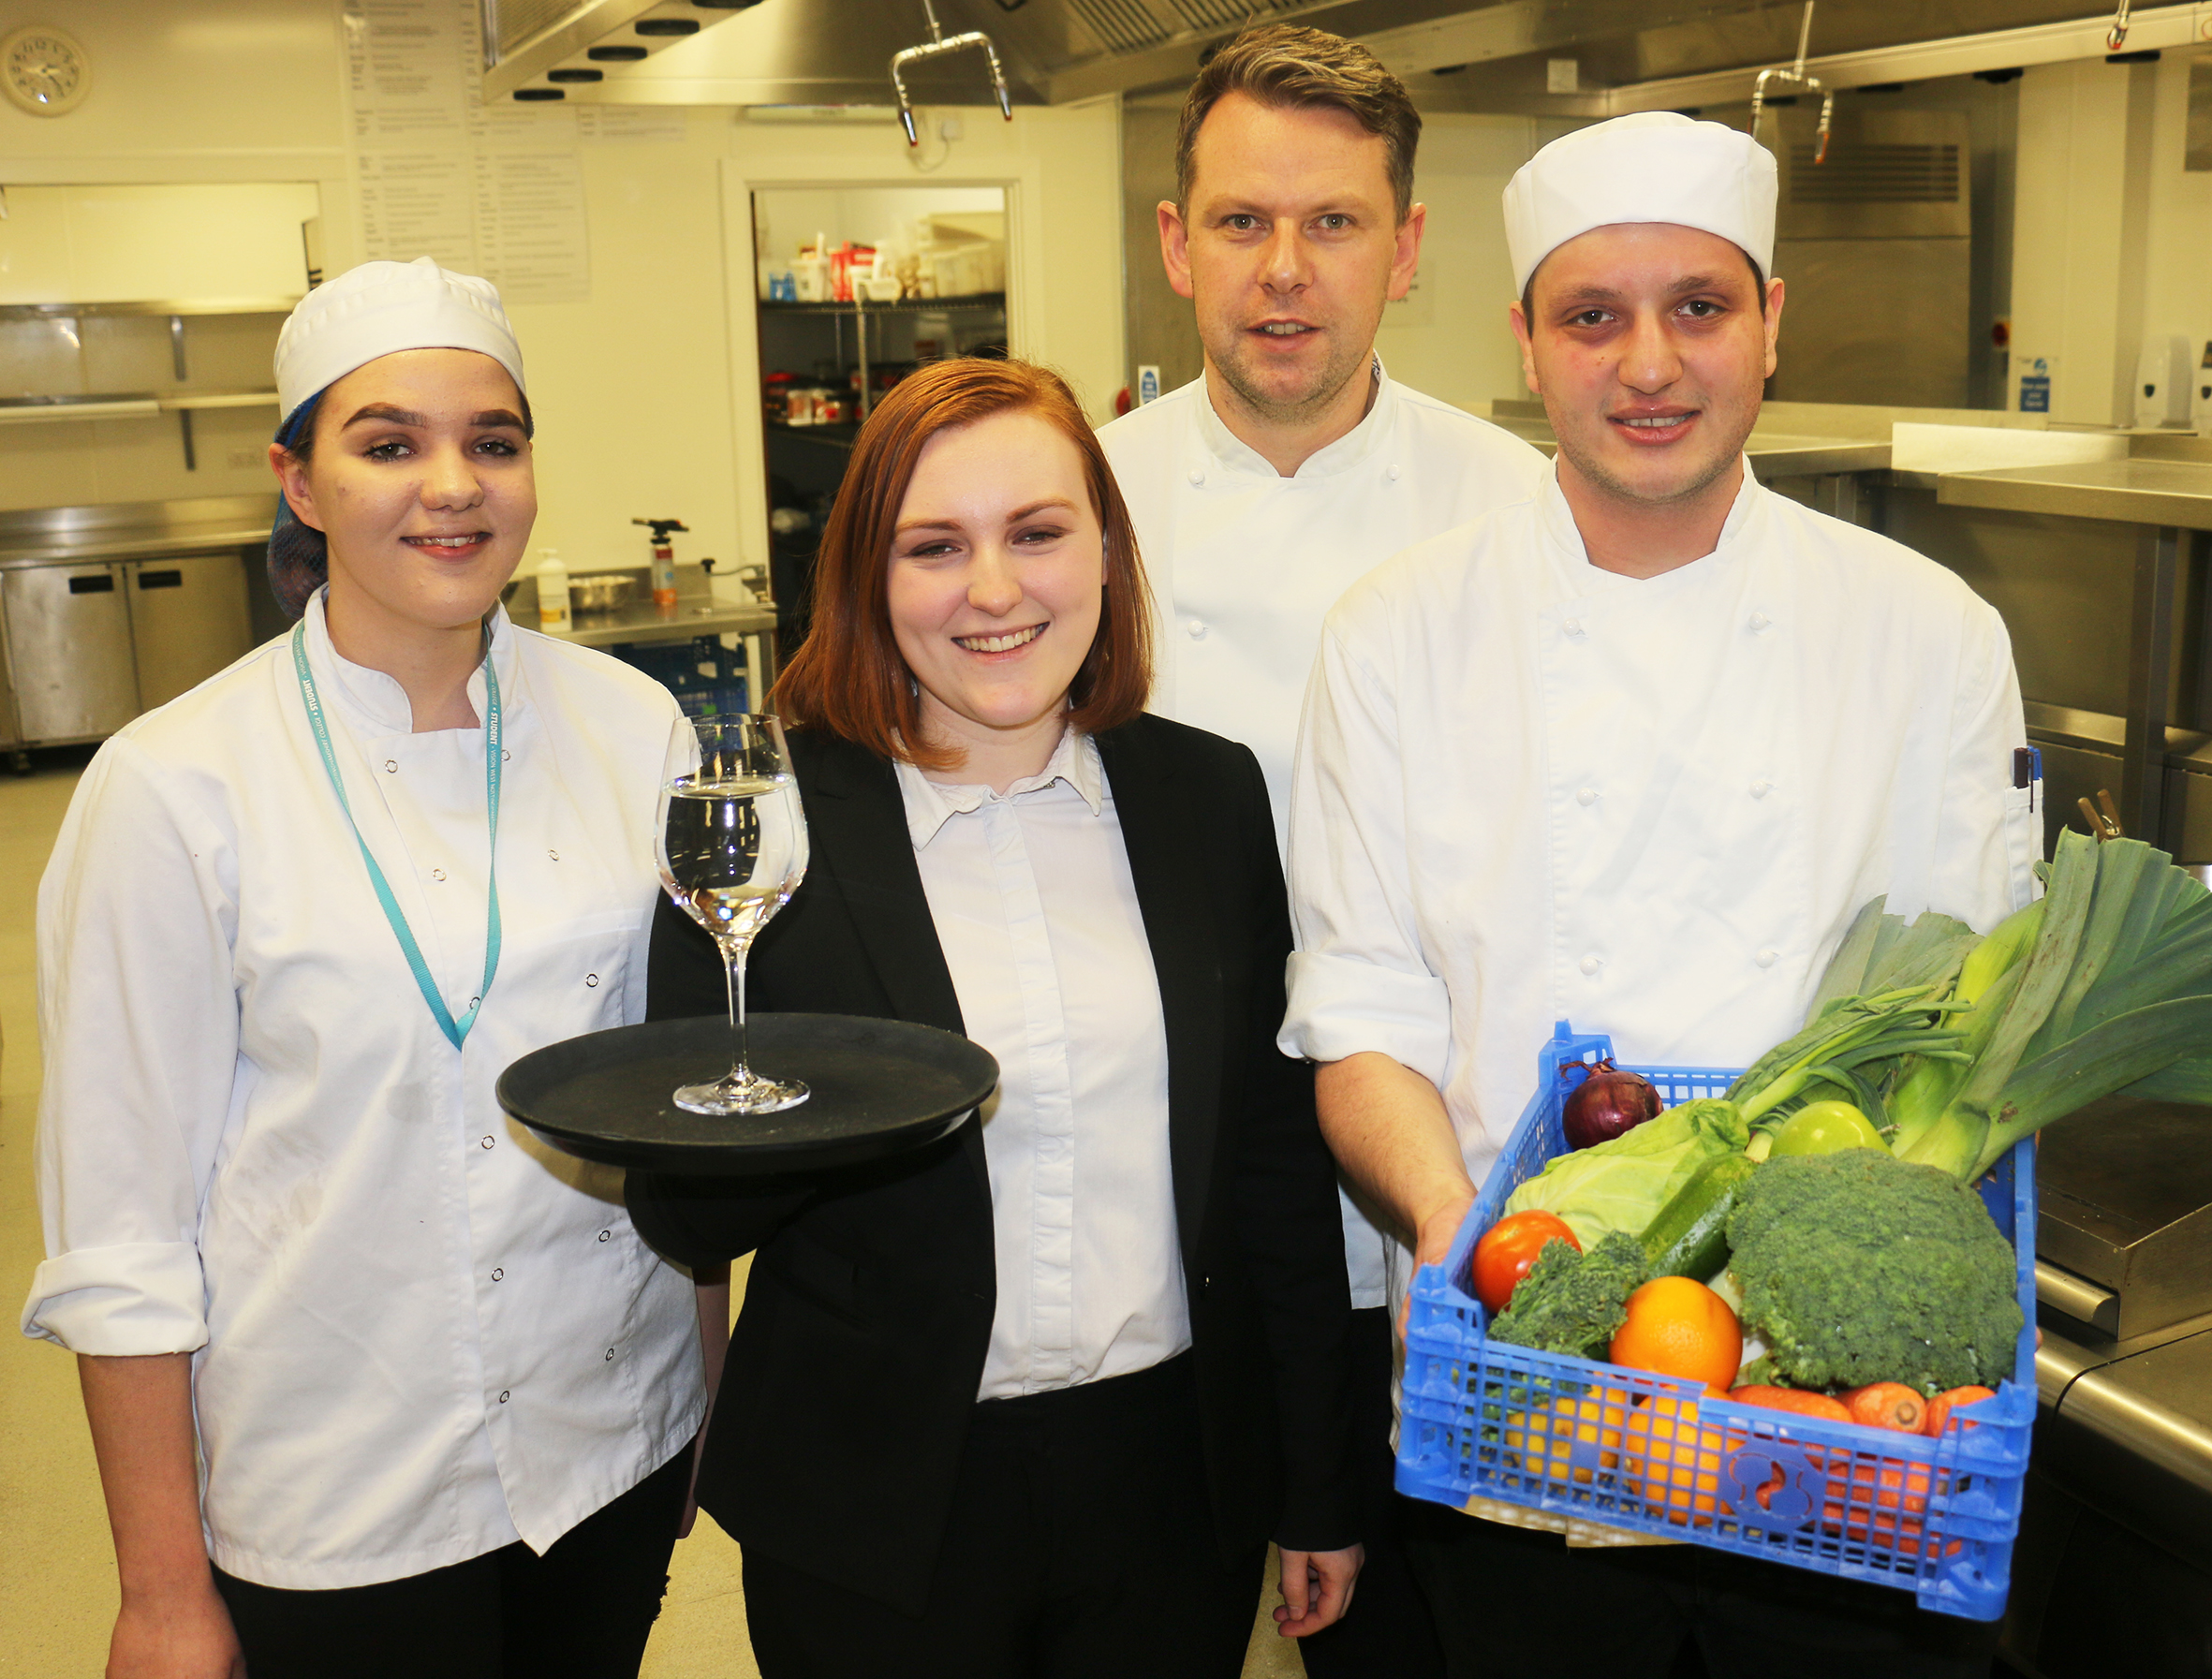 Catering and hospitality students turn the heat up for national challenge